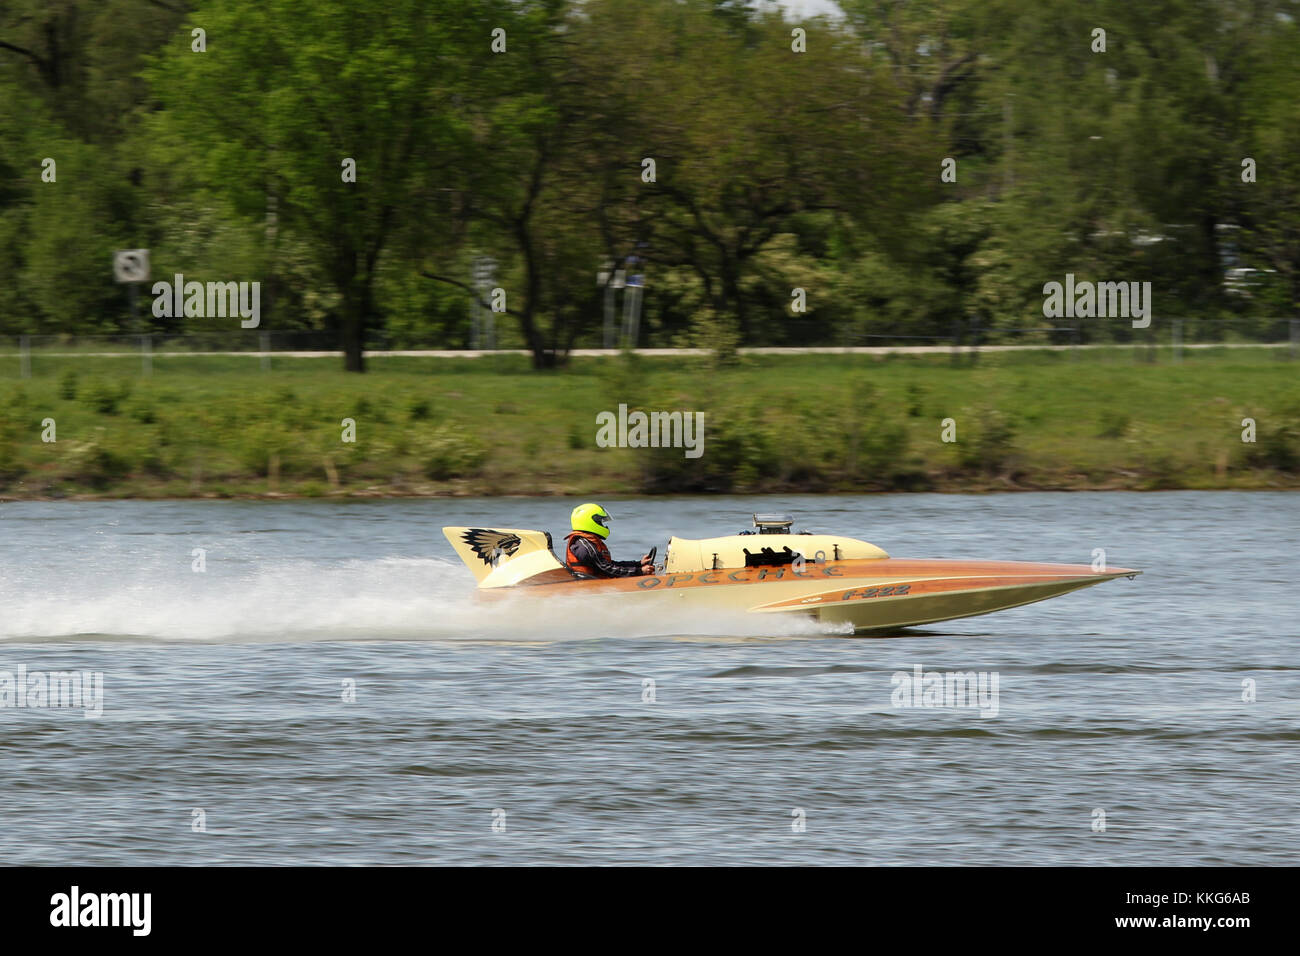 Race Boat F222, Opechee. 2017 APBA, American Power Boat Association, Test and Tune day at Eastwood Lake, Dayton, - Stock Image